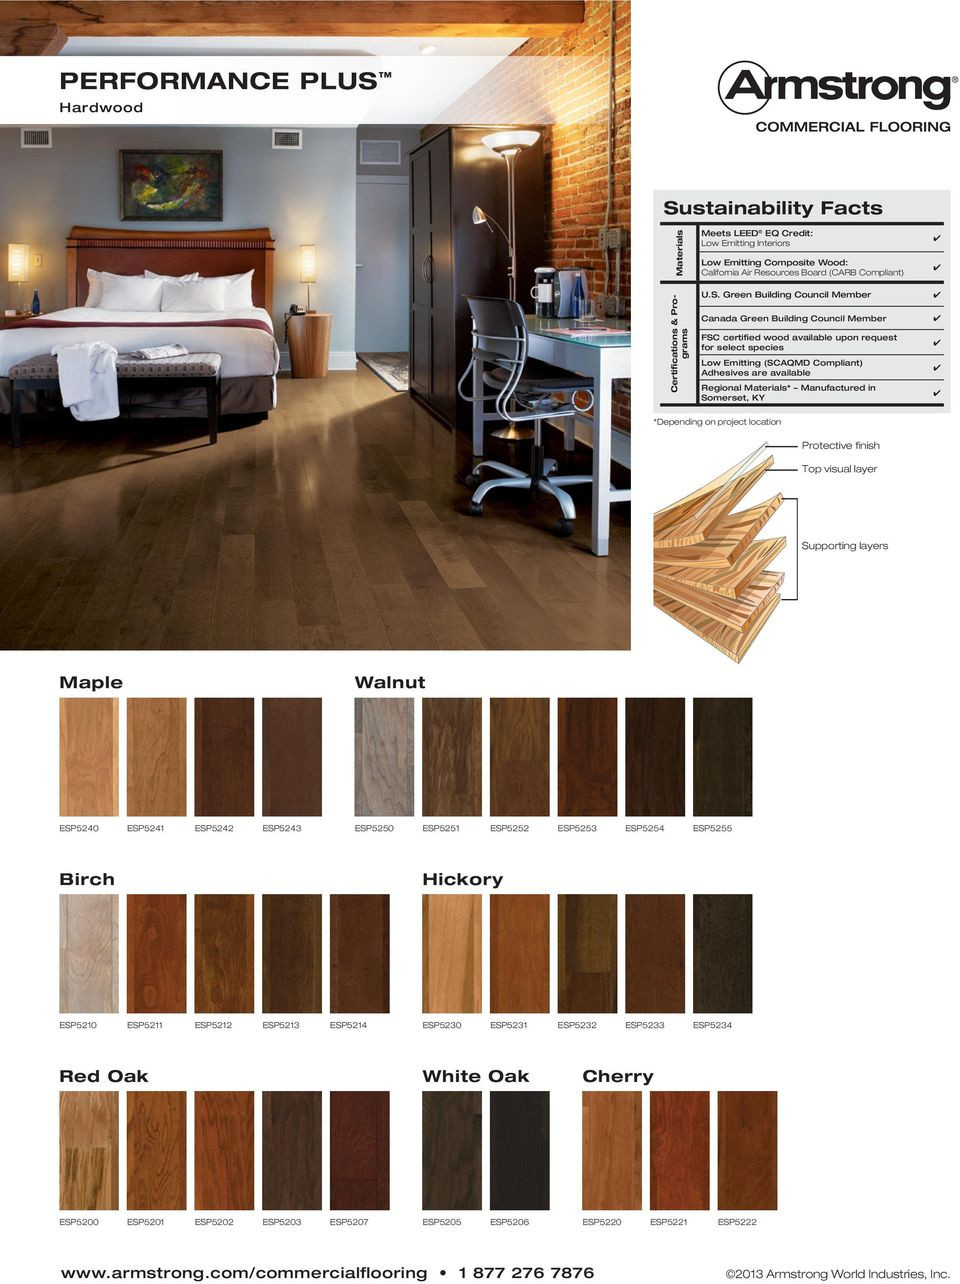 hardwood floor refinishing cincinnati of performance plus installation maintenance tip sheet pdf with regard to green building council member canada green building council member fsc certified wood available upon request for